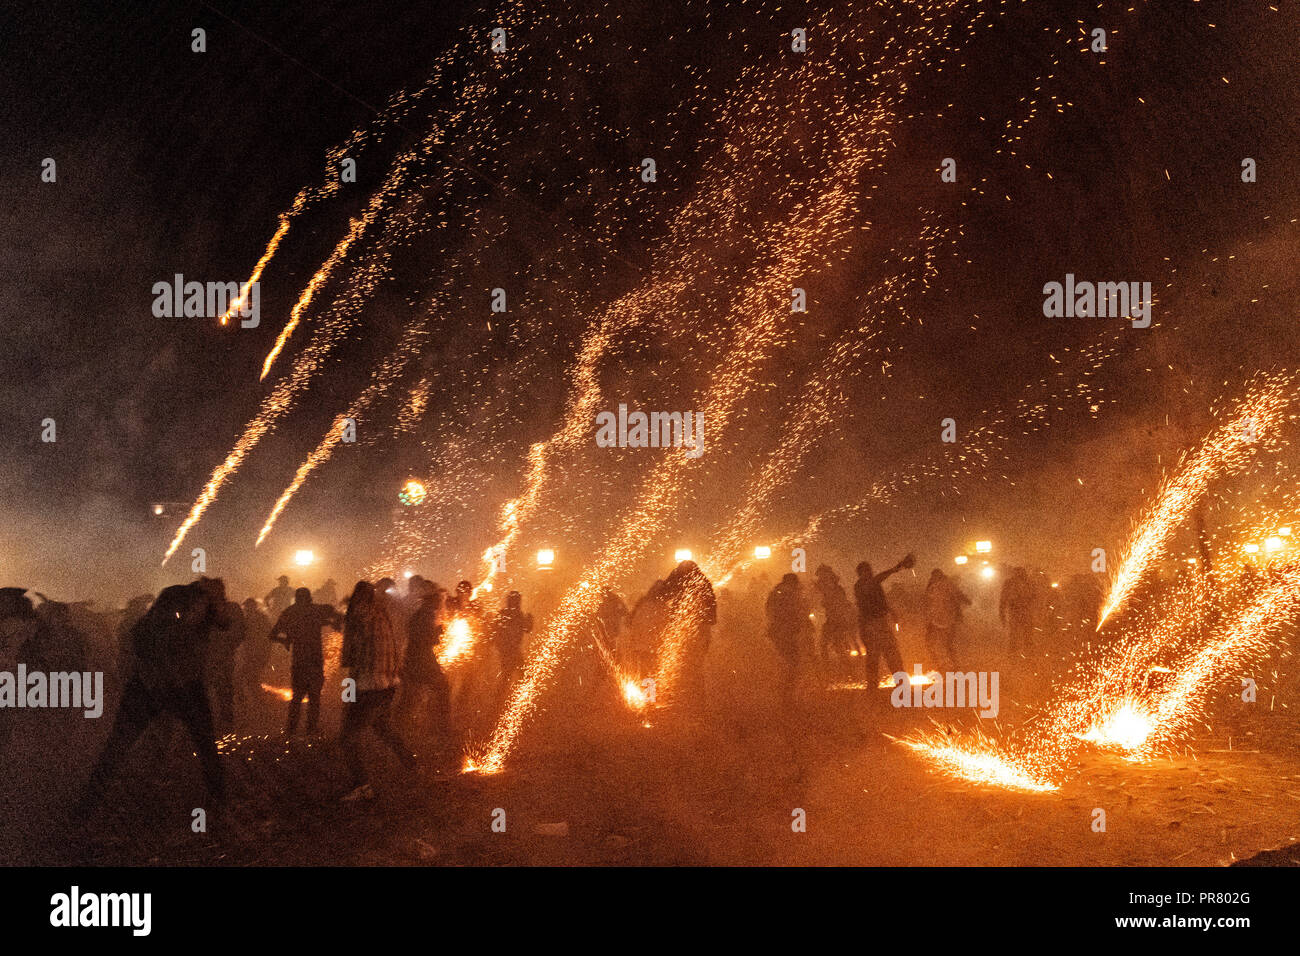 San Miguel de Allende, Mexico. 29th Sept 2018. Sparks from exploding sky rockets scatter as Mexicans run for cover during a barrage of pyrotechnic rockets during the Alborada festival September 29, 2018 in San Miguel de Allende, Mexico. The unusual festival celebrates the cities patron saint with a two hour-long firework battle at 4am representing the struggle between Saint Michael and Lucifer. Credit: Planetpix/Alamy Live News - Stock Image